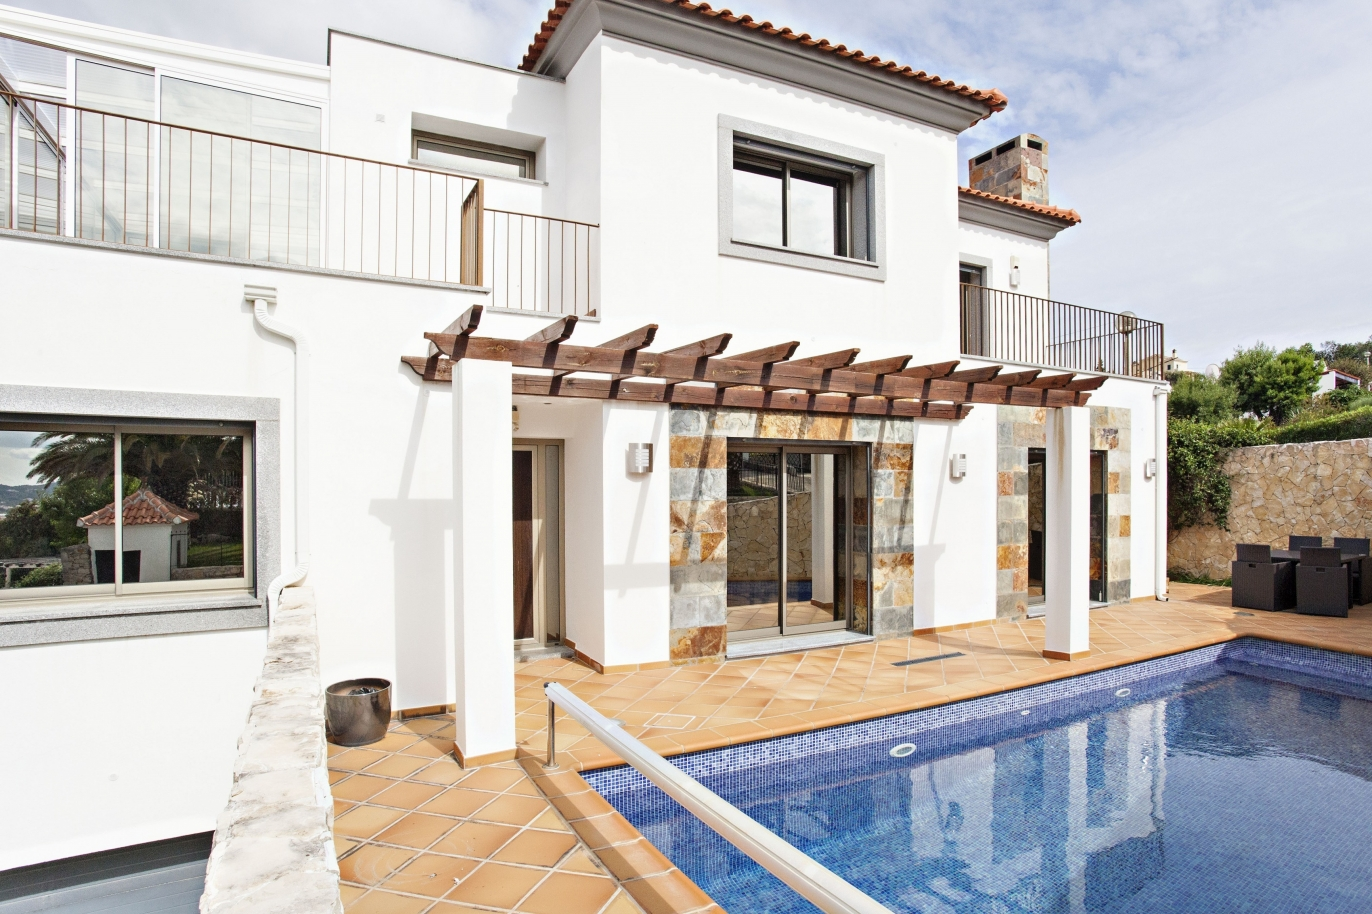 villa-with-swimming-pool-and-views-to-the-mountains-sao-bras-de-alportel-algarve